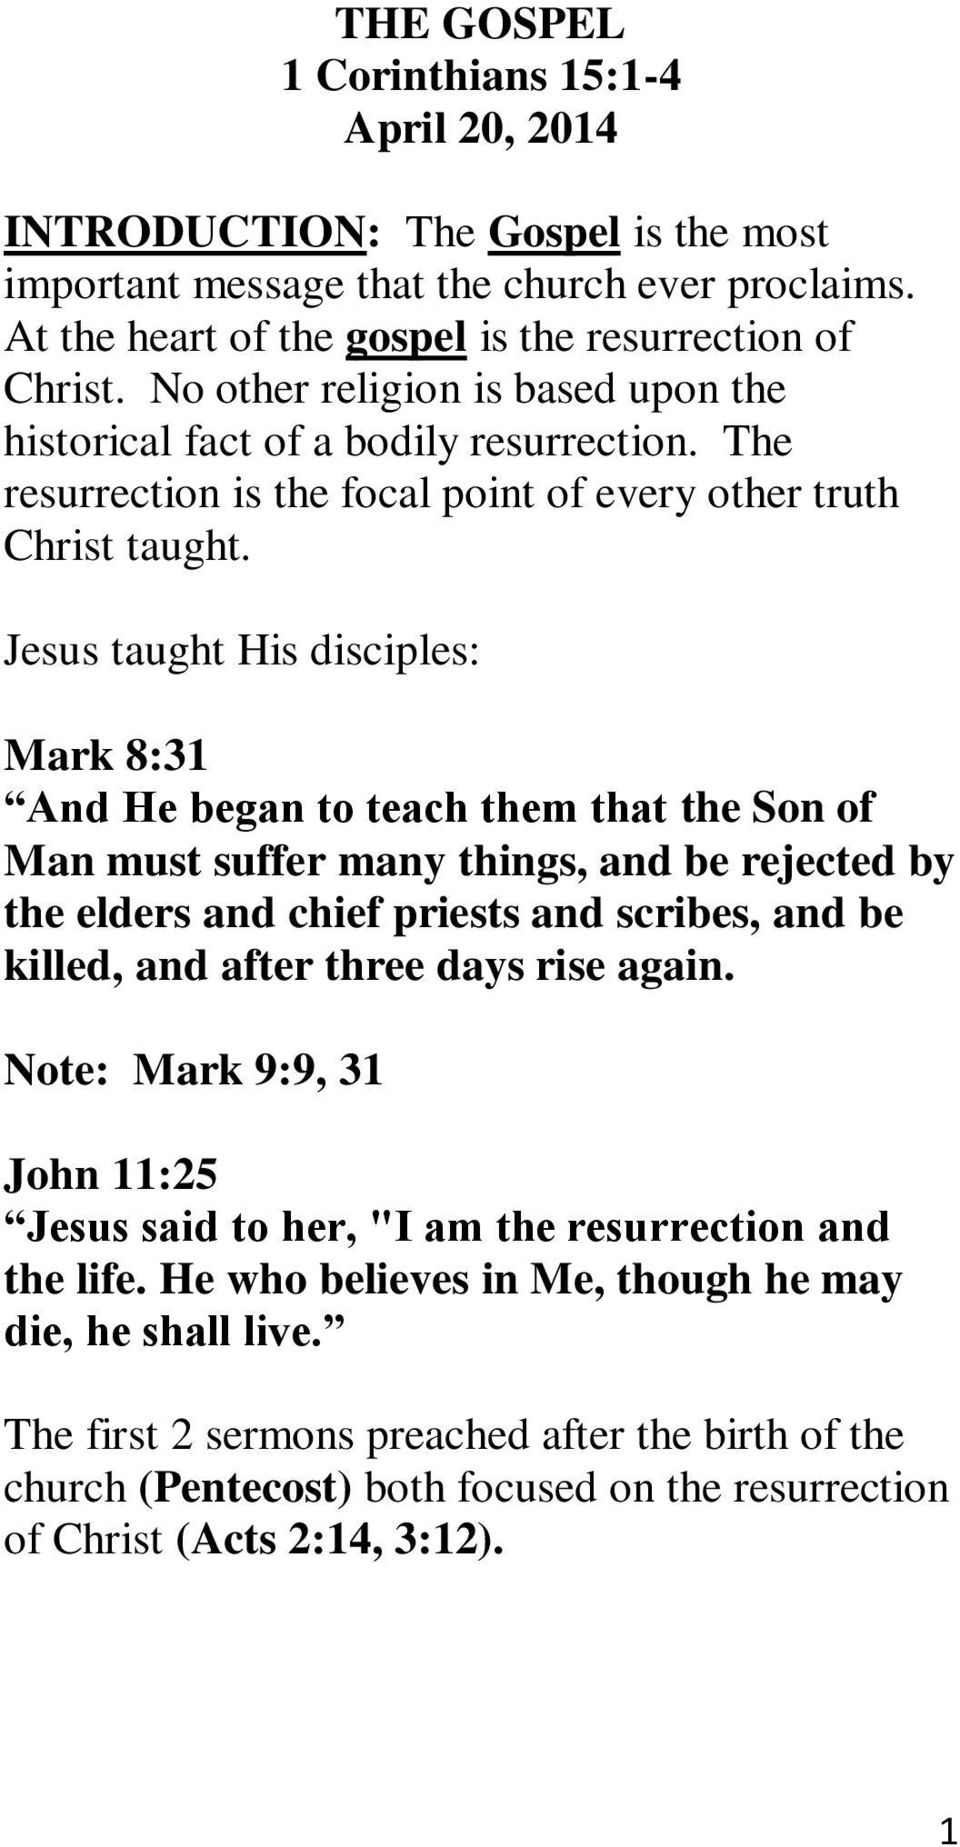 Jesus taught His disciples: Mark 8:31 And He began to teach them that the Son of Man must suffer many things, and be rejected by the elders and chief priests and scribes, and be killed, and after